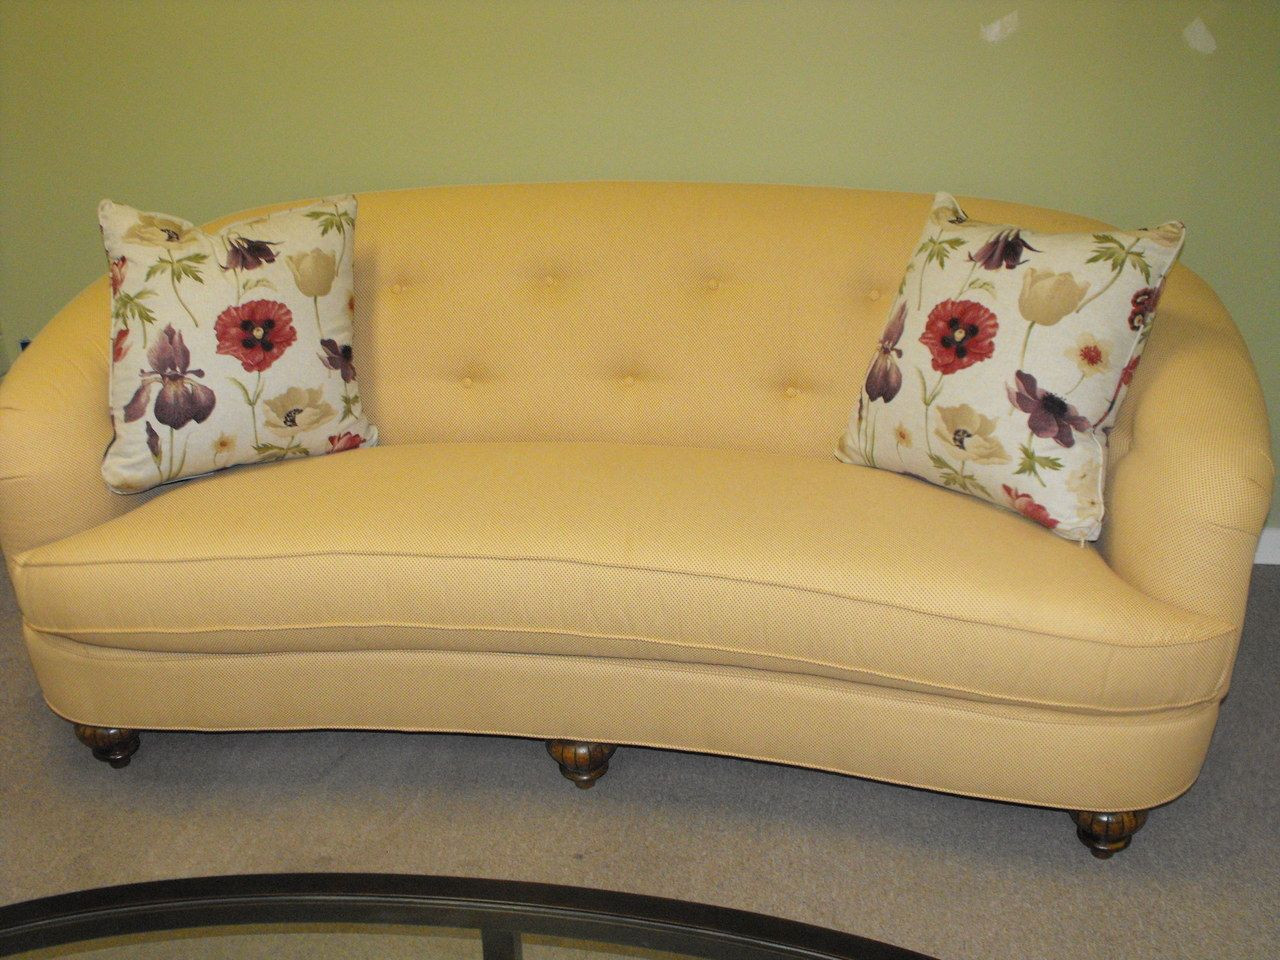 Pin By Better Value Furniture On Living Room Dreams Sofa